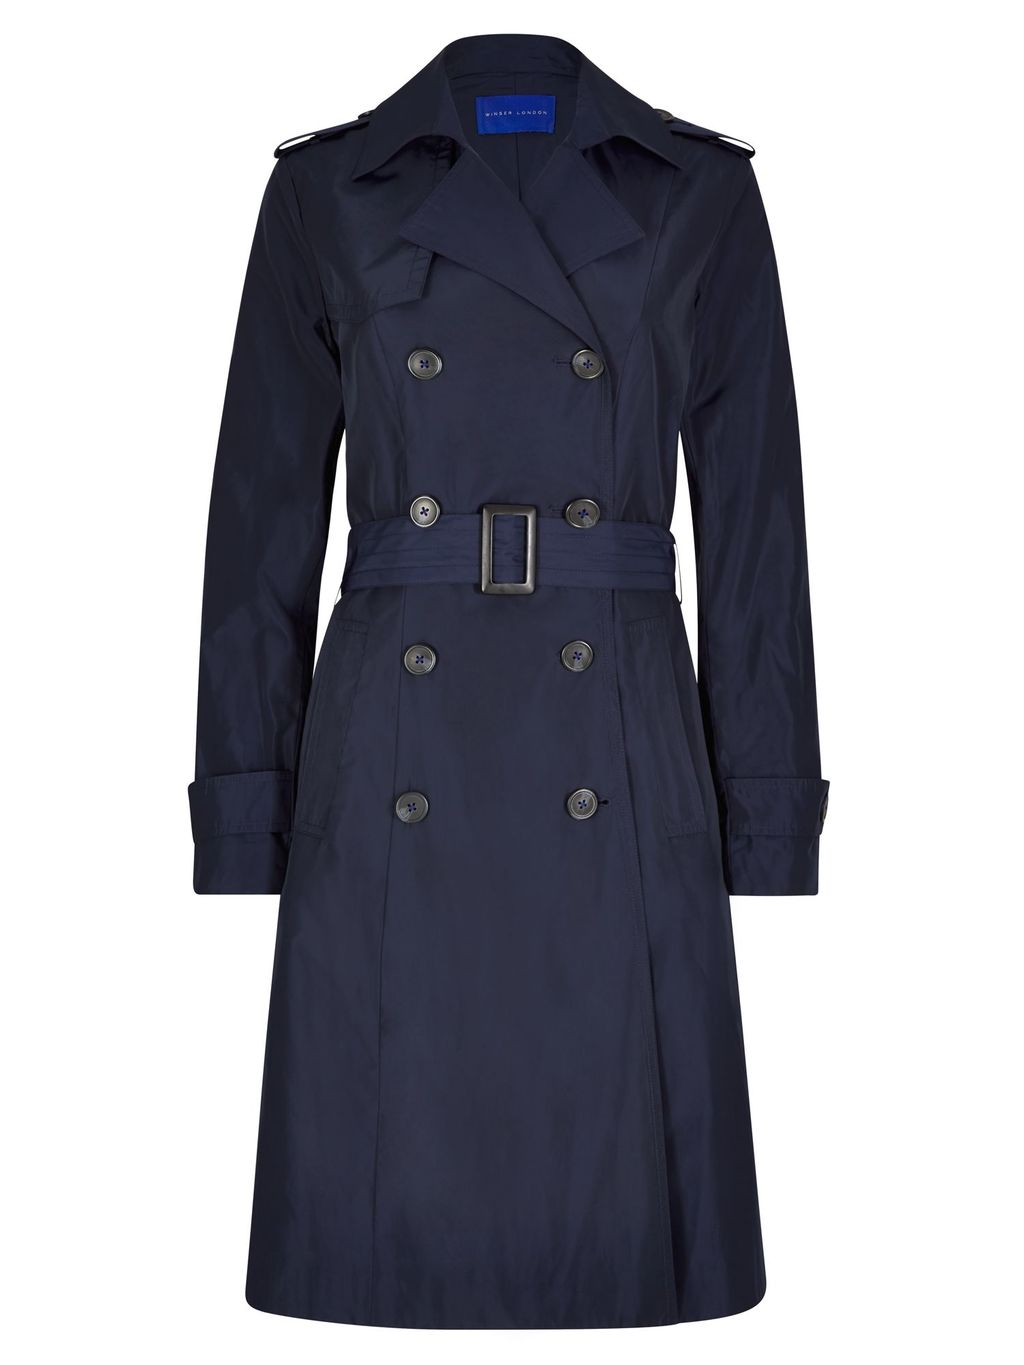 Winser Trench Coat, Navy - pattern: plain; style: trench coat; length: on the knee; fit: slim fit; collar: standard lapel/rever collar; predominant colour: navy; occasions: casual; fibres: polyester/polyamide - 100%; waist detail: belted waist/tie at waist/drawstring; sleeve length: long sleeve; sleeve style: standard; collar break: medium; pattern type: fabric; texture group: woven bulky/heavy; season: s/s 2016